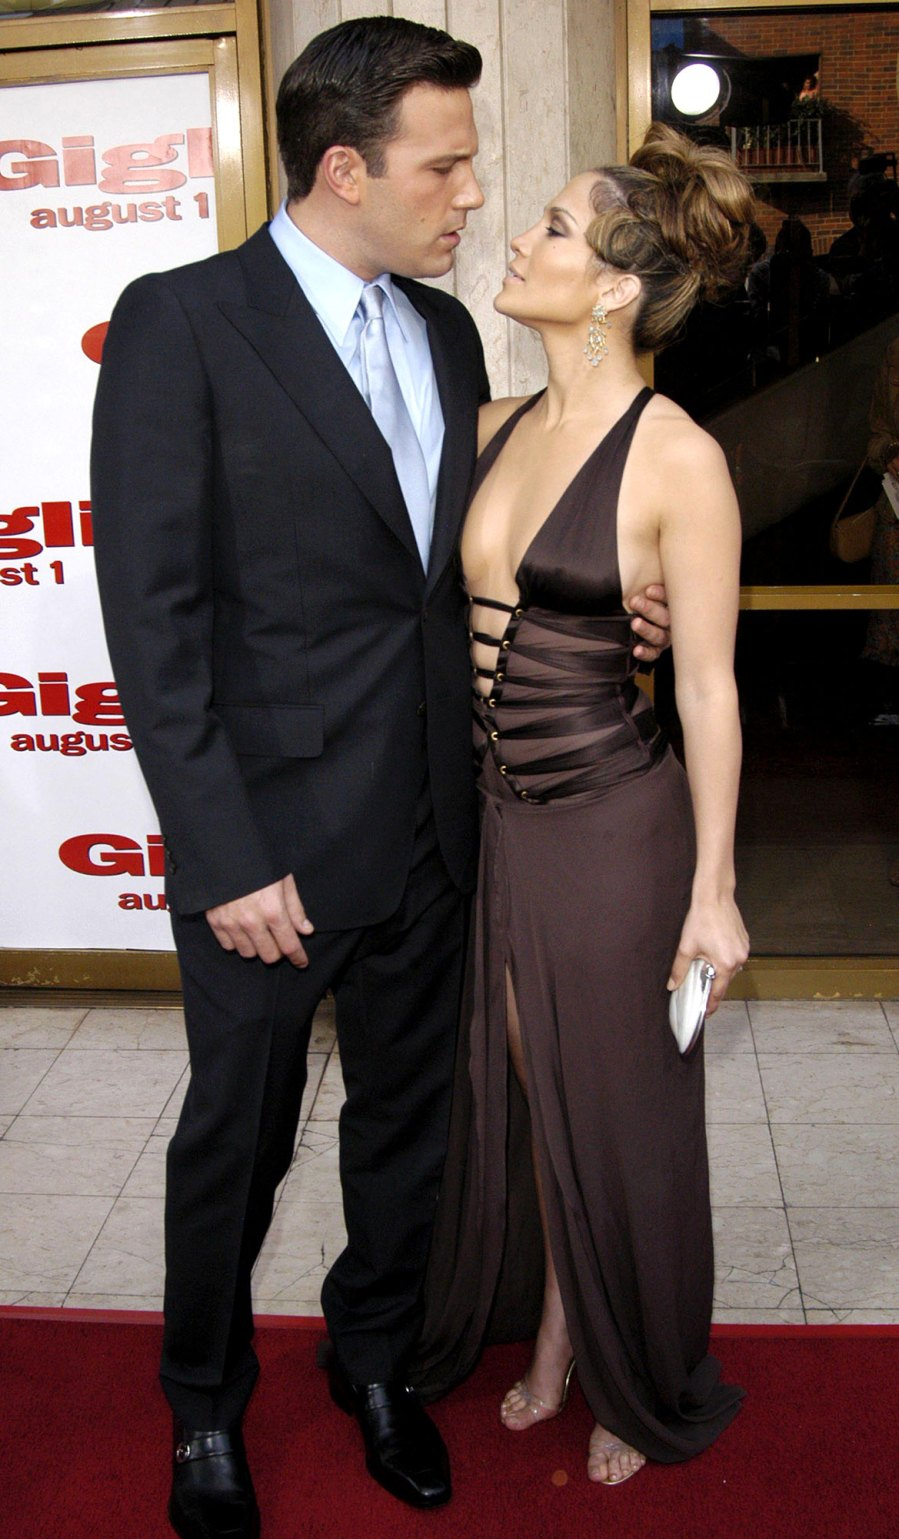 Everything Ben Affleck and Jennifer Lopez Have Said About Their Relationship Over the Years